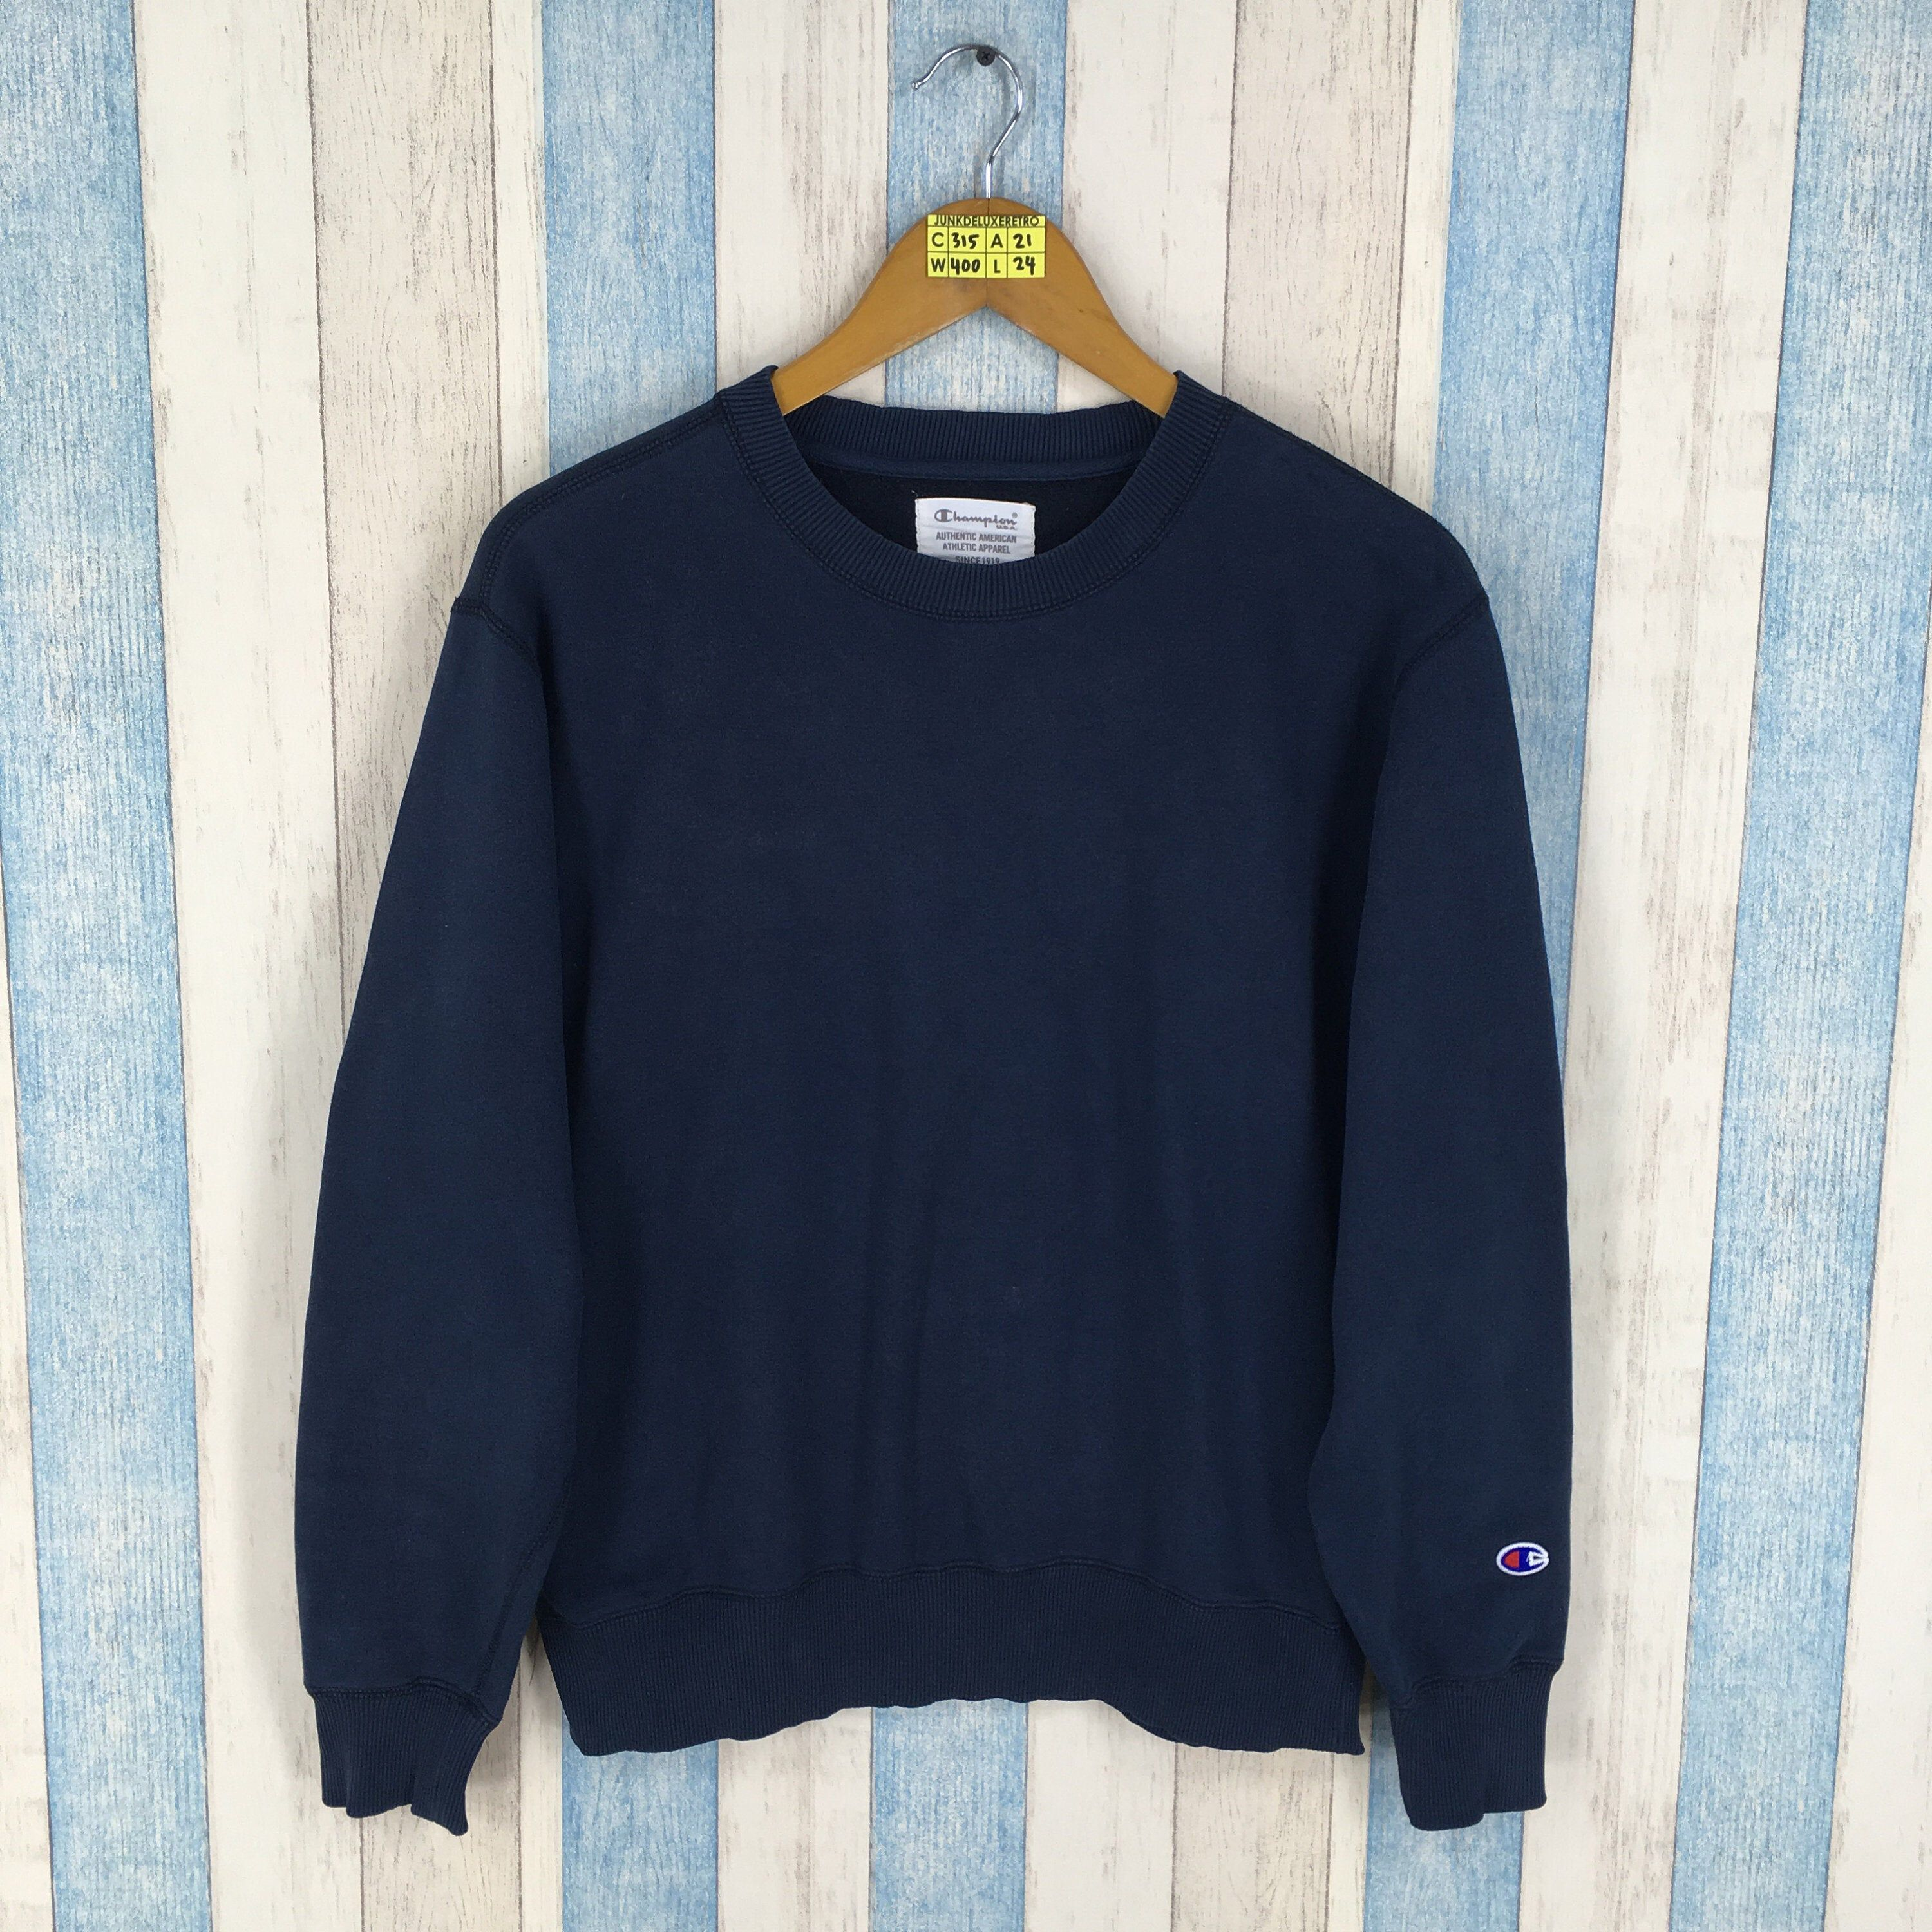 Excited To Share The Latest Addition To My Etsy Shop Champion Sweatshirt Black Medium Vintage 90s Cha Champion Sportswear Champion Sweatshirt Stylish Jackets [ 3000 x 3000 Pixel ]